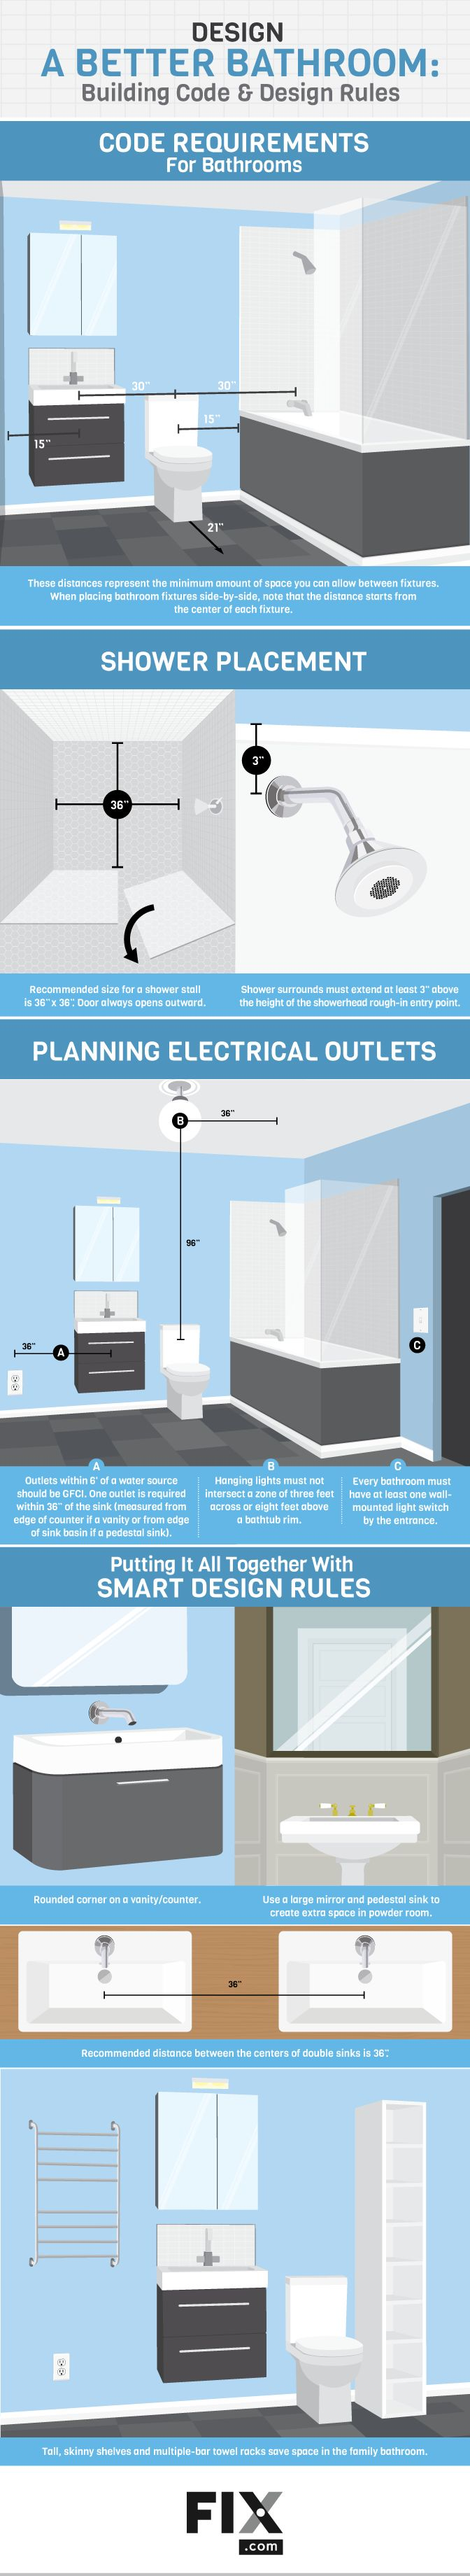 a better bathroom building code and design rules infographic